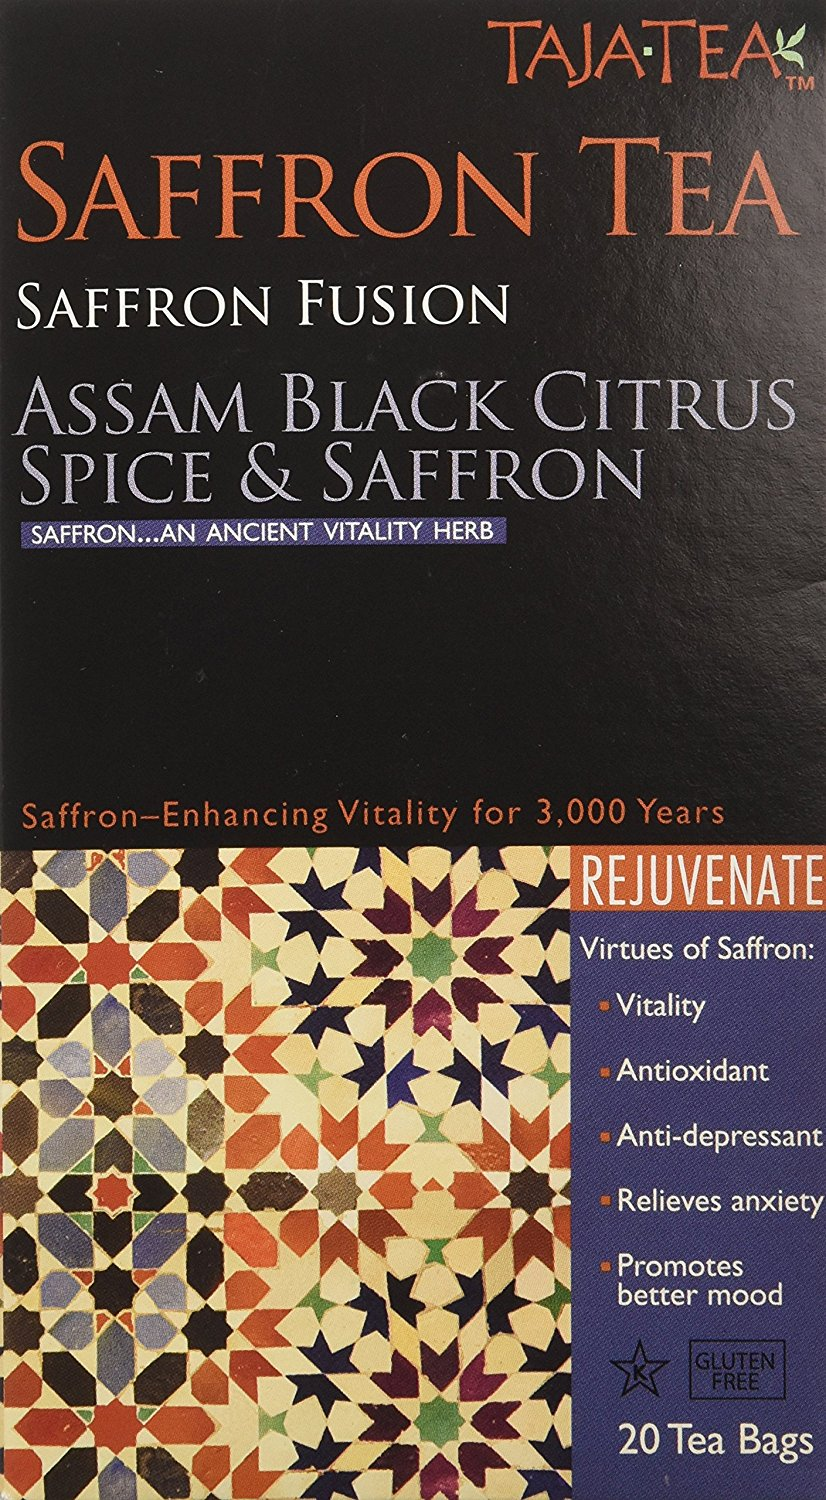 Taja Tea Assam Black Citrus Spice and Saffron